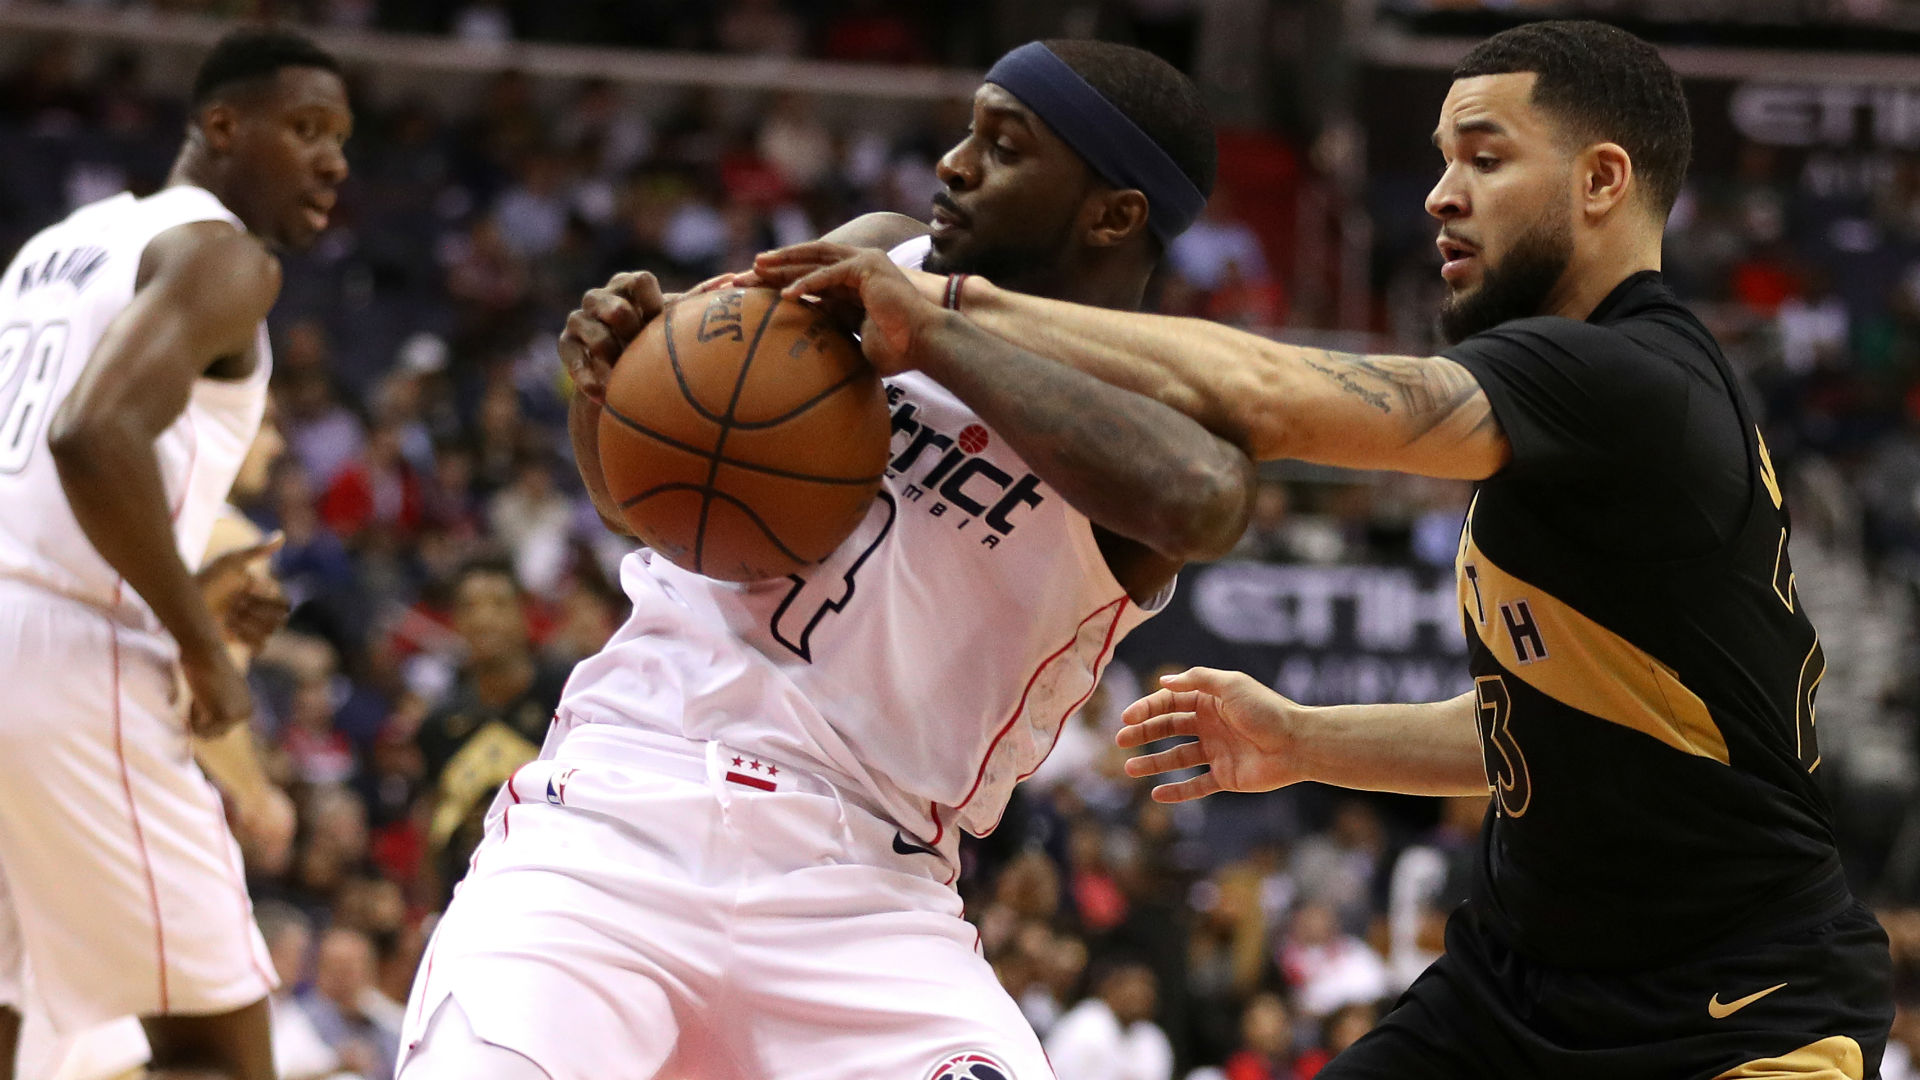 Fred VanVleet back for Game 6 after right shoulder injury